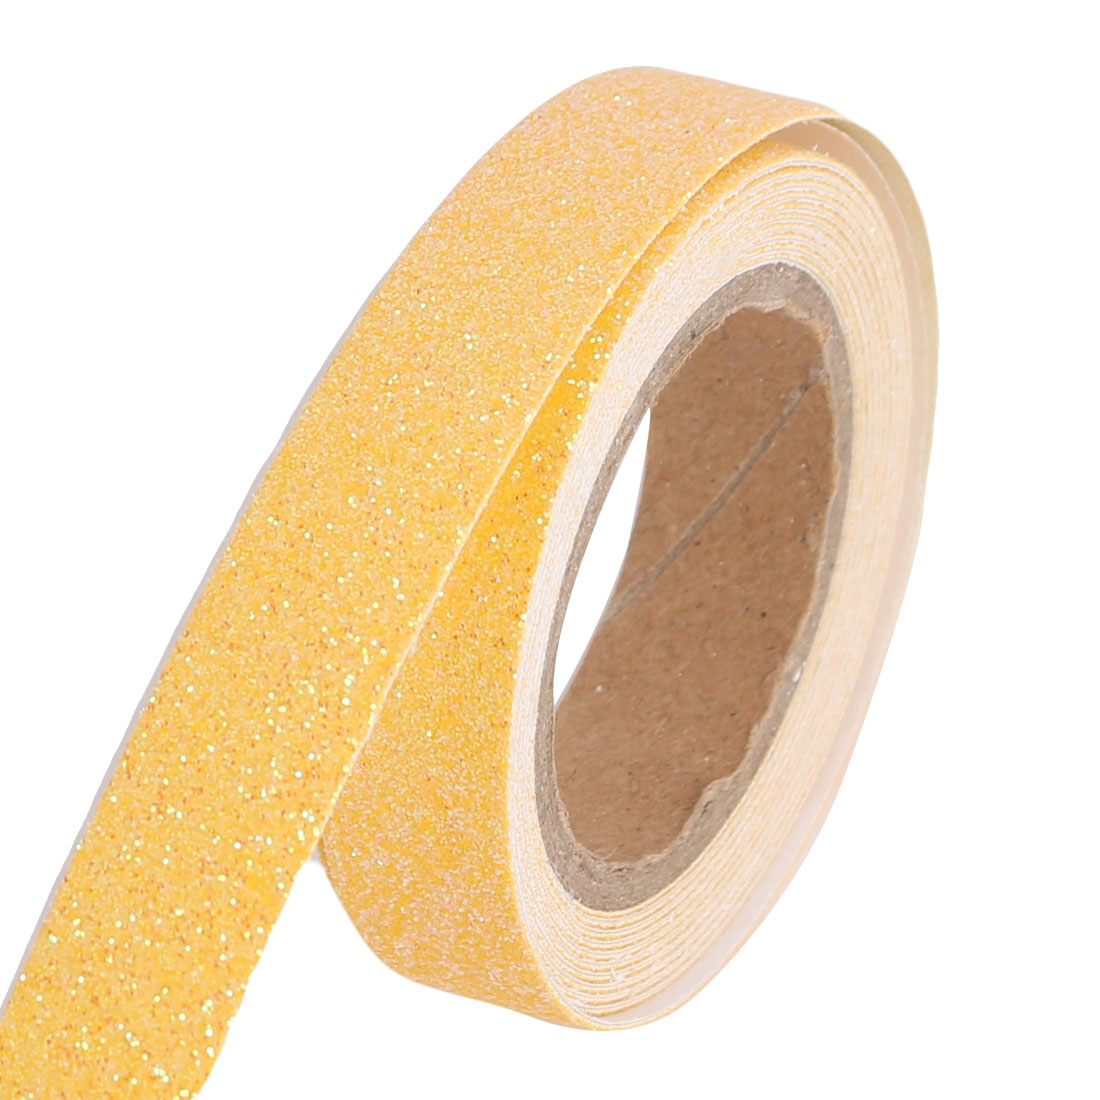 Glitter Self Adhesive Decorative DIY Crafting Sticky Paper Tape Sticker Yellow